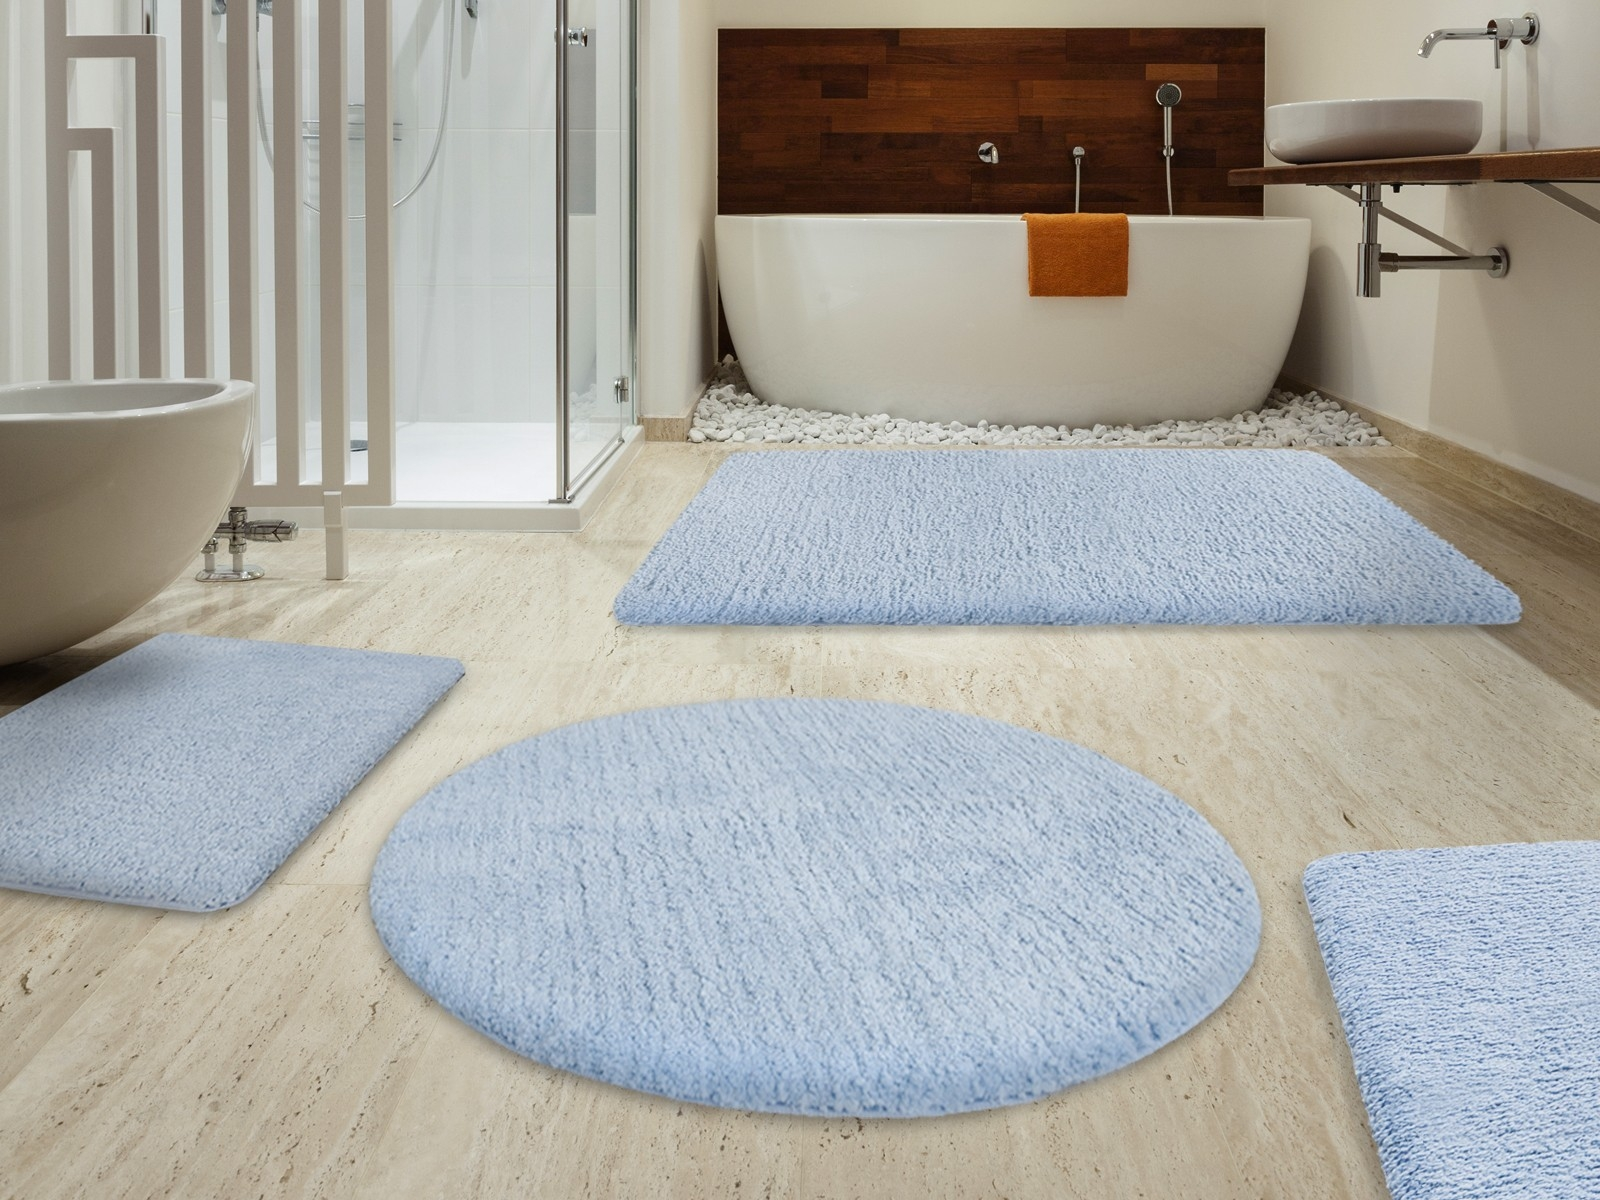 Round Bath Mats Shower